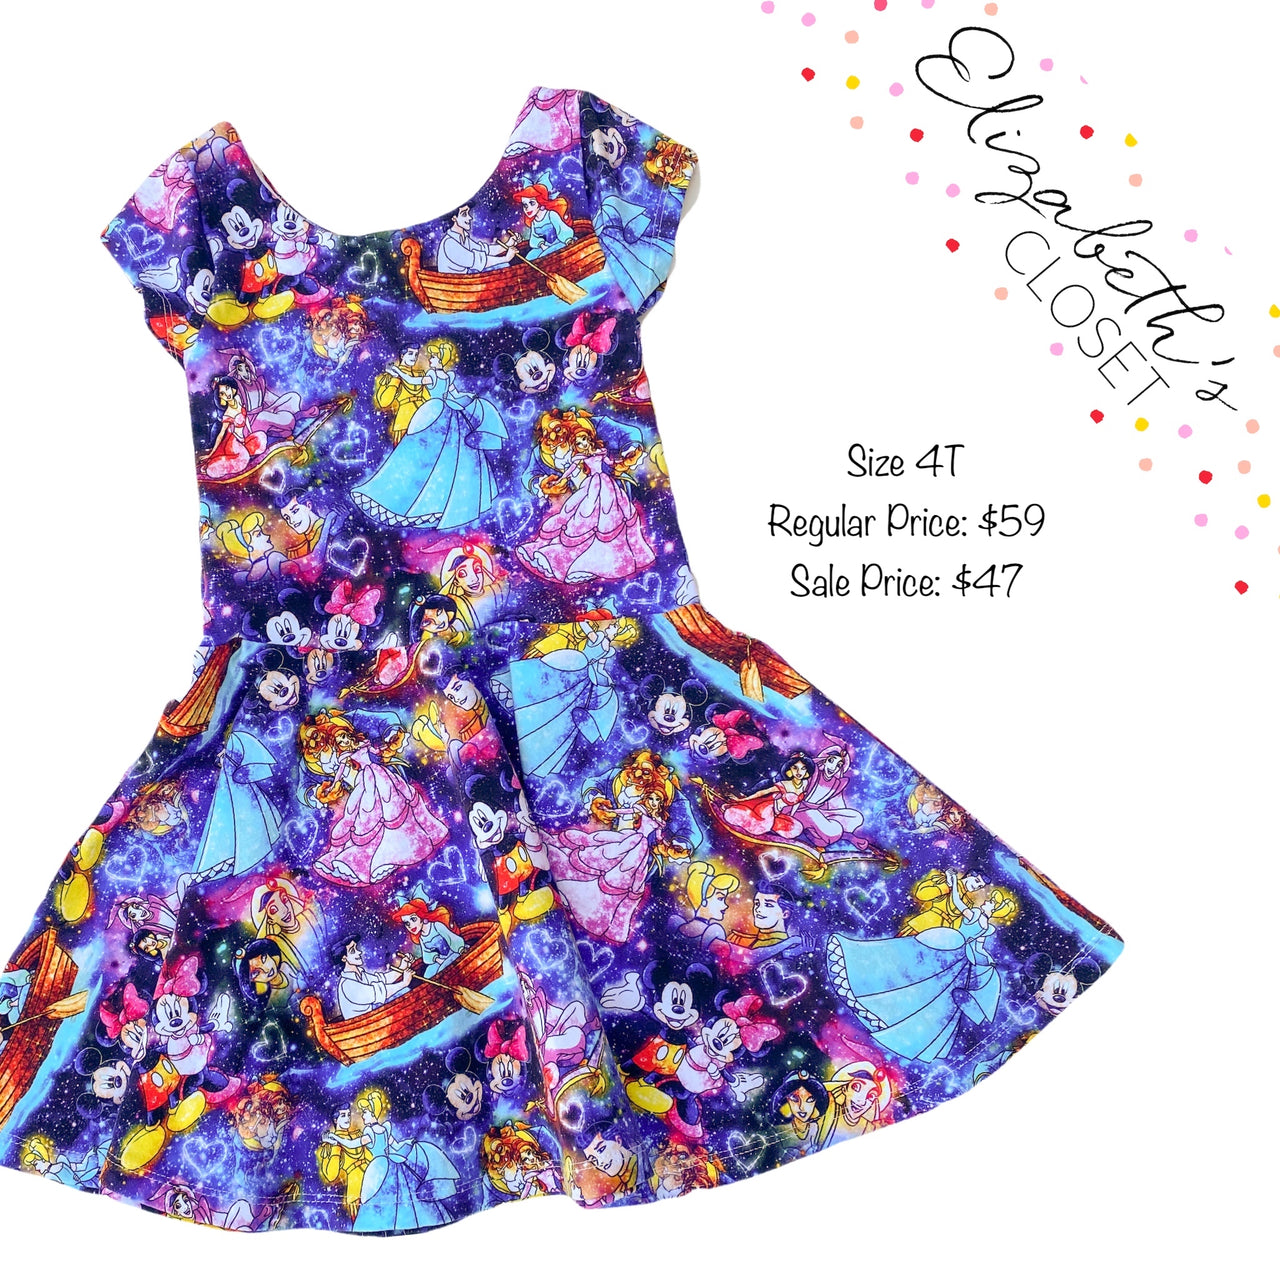 Magical Couples Dress, size 4T